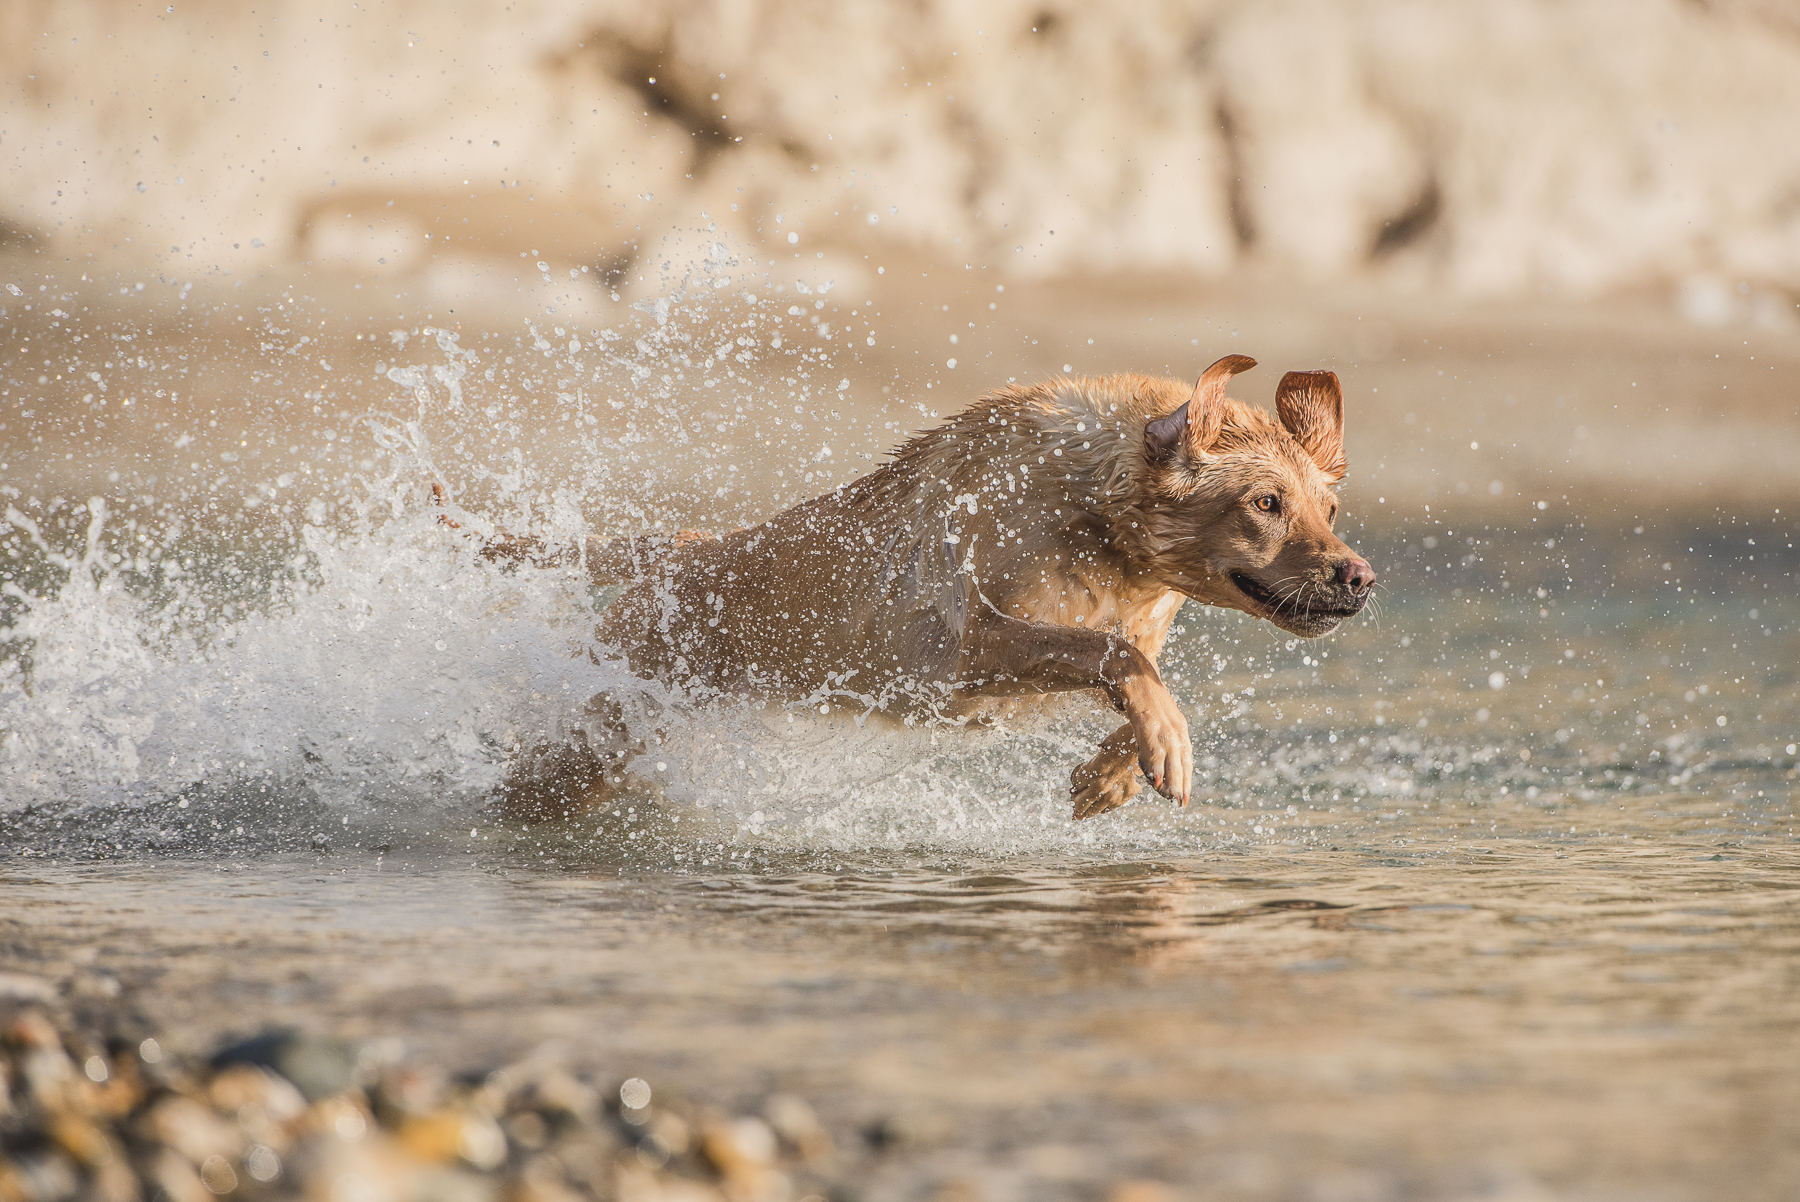 Dog running through the waves